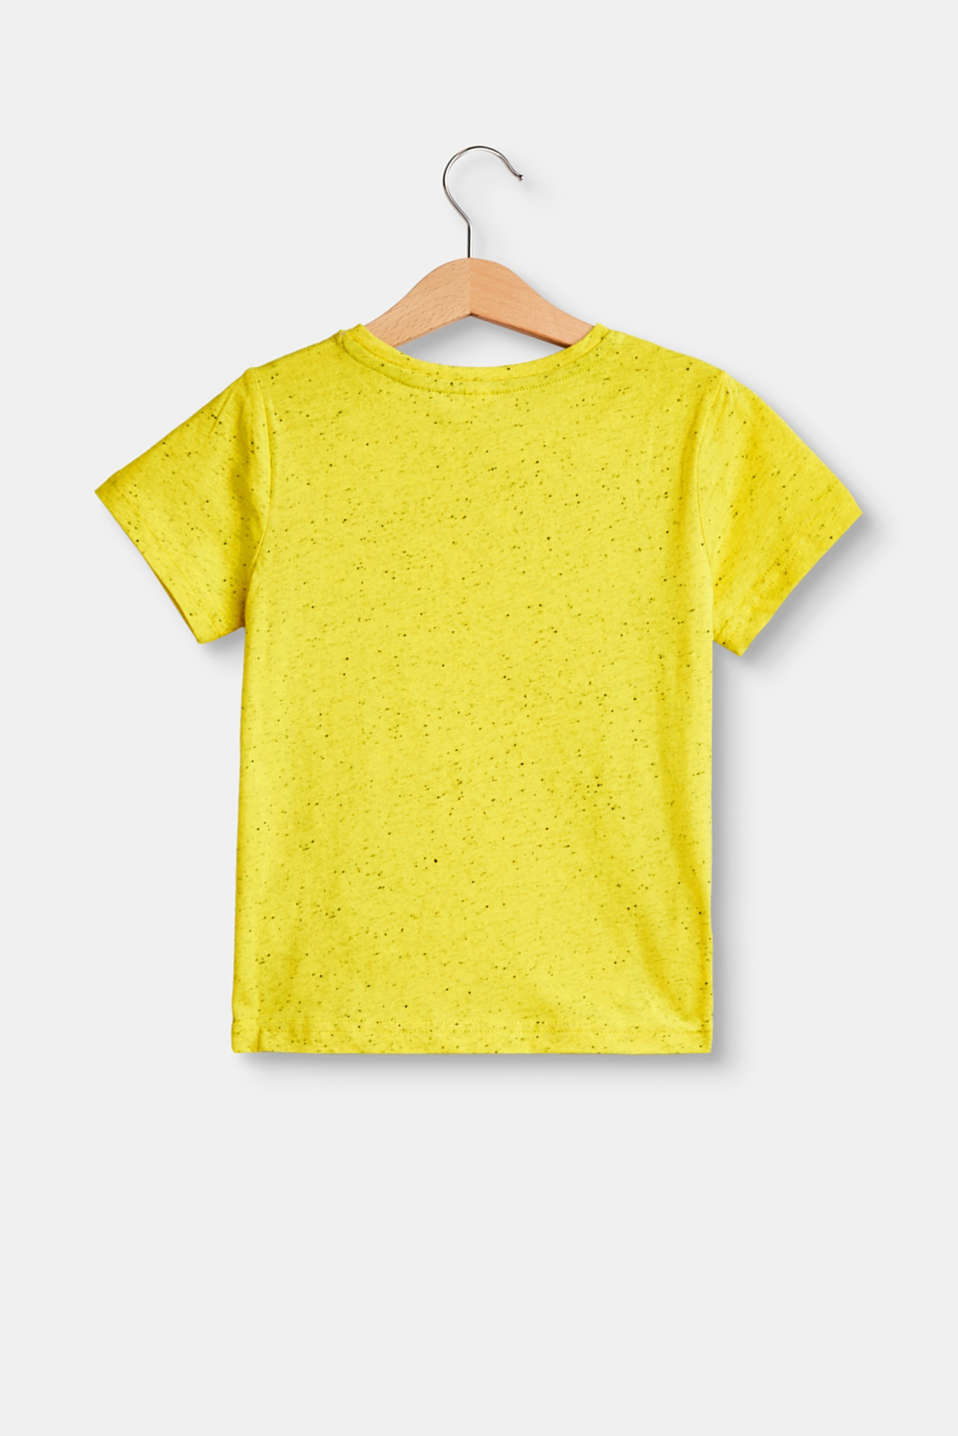 Nubbed T-shirt with a photo print